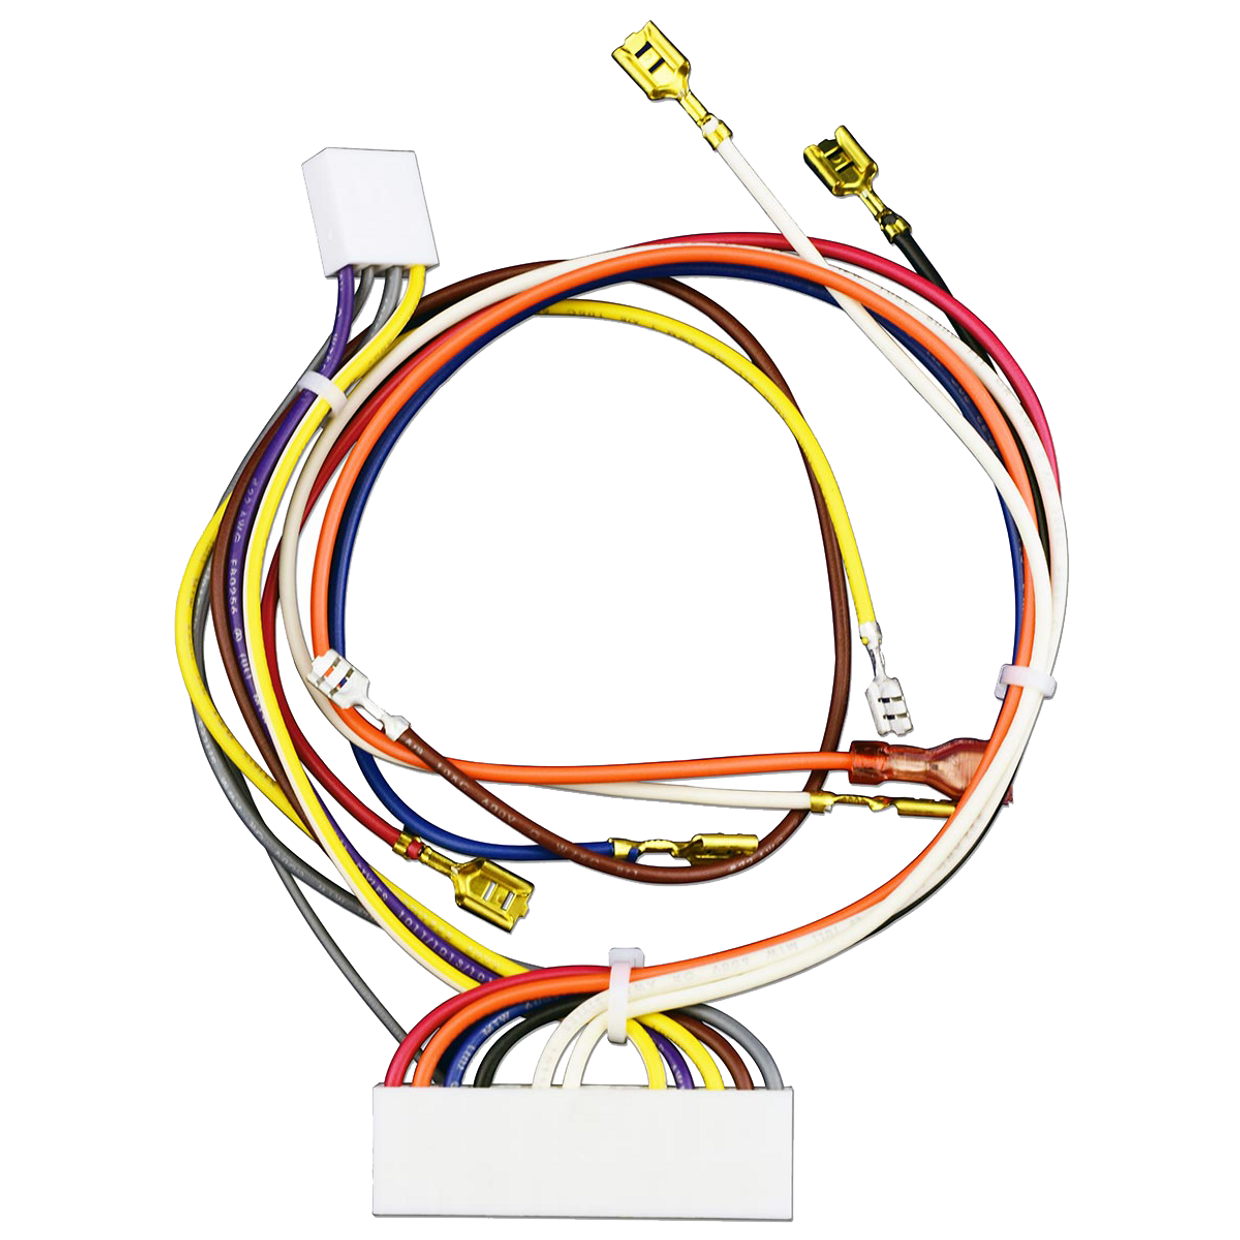 041c4246 Wire Harness Kit Chamberlain Wiring Kits